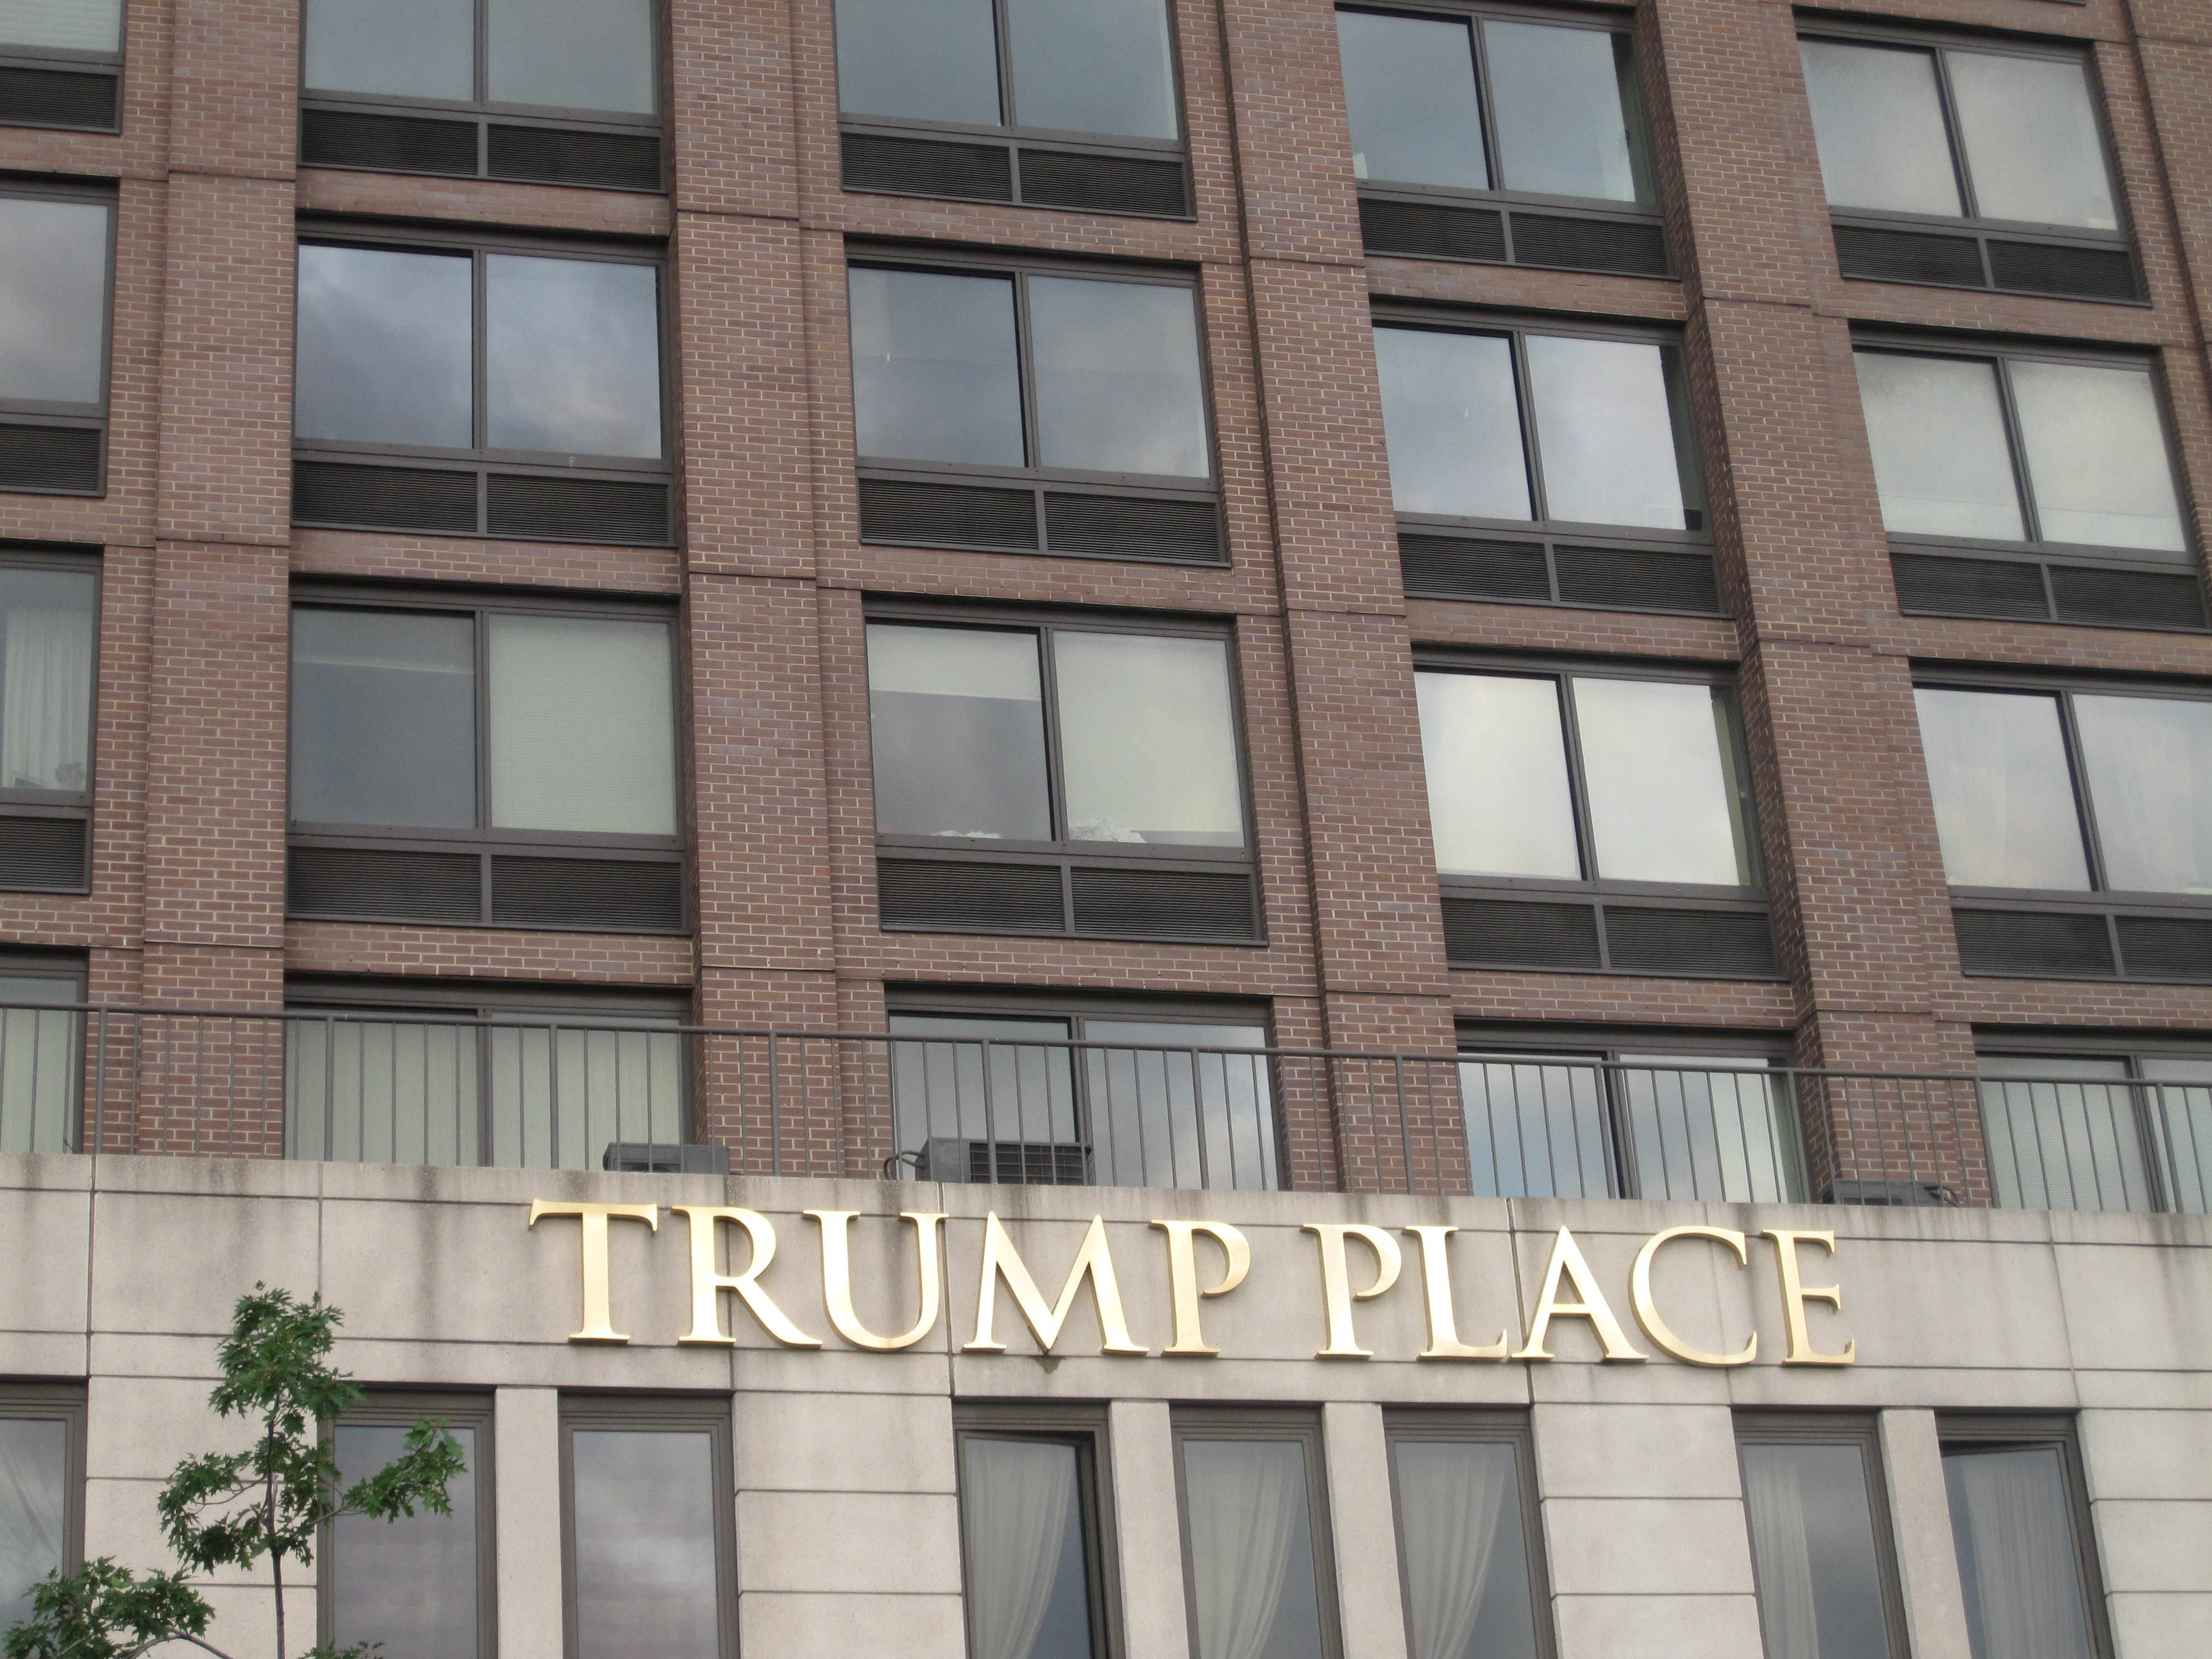 file:closeup of trump place apartments in new york city img 1639